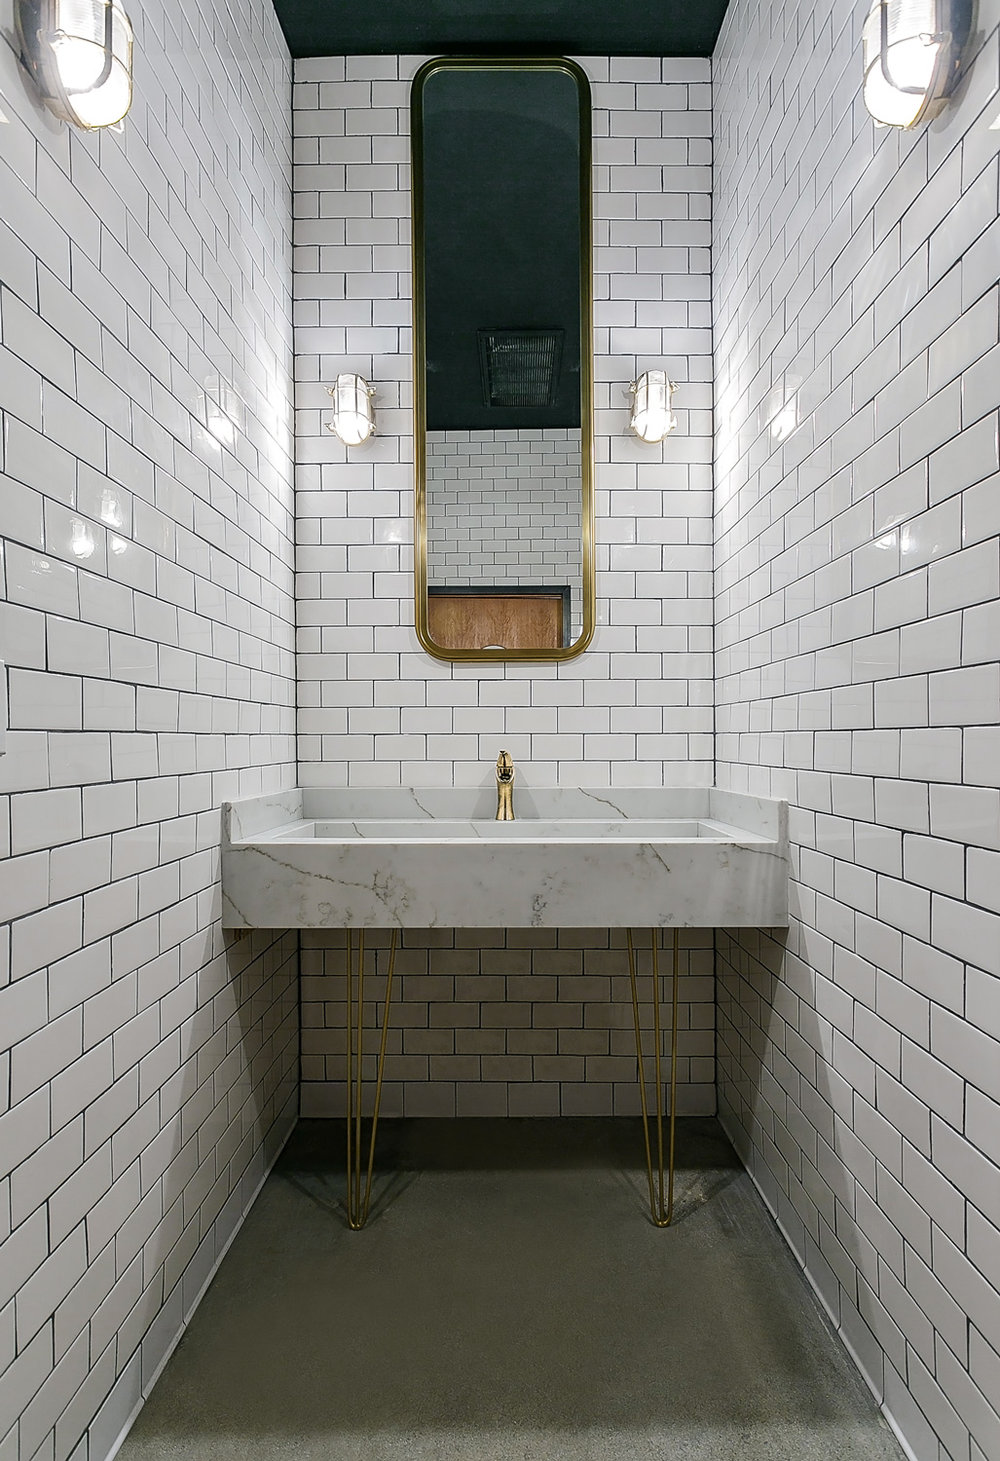 melrose-station-speakeasy-bar-in-hollywood-by-archillusion-design-los-angeles-restroom-custom-marble-sink-midcentury